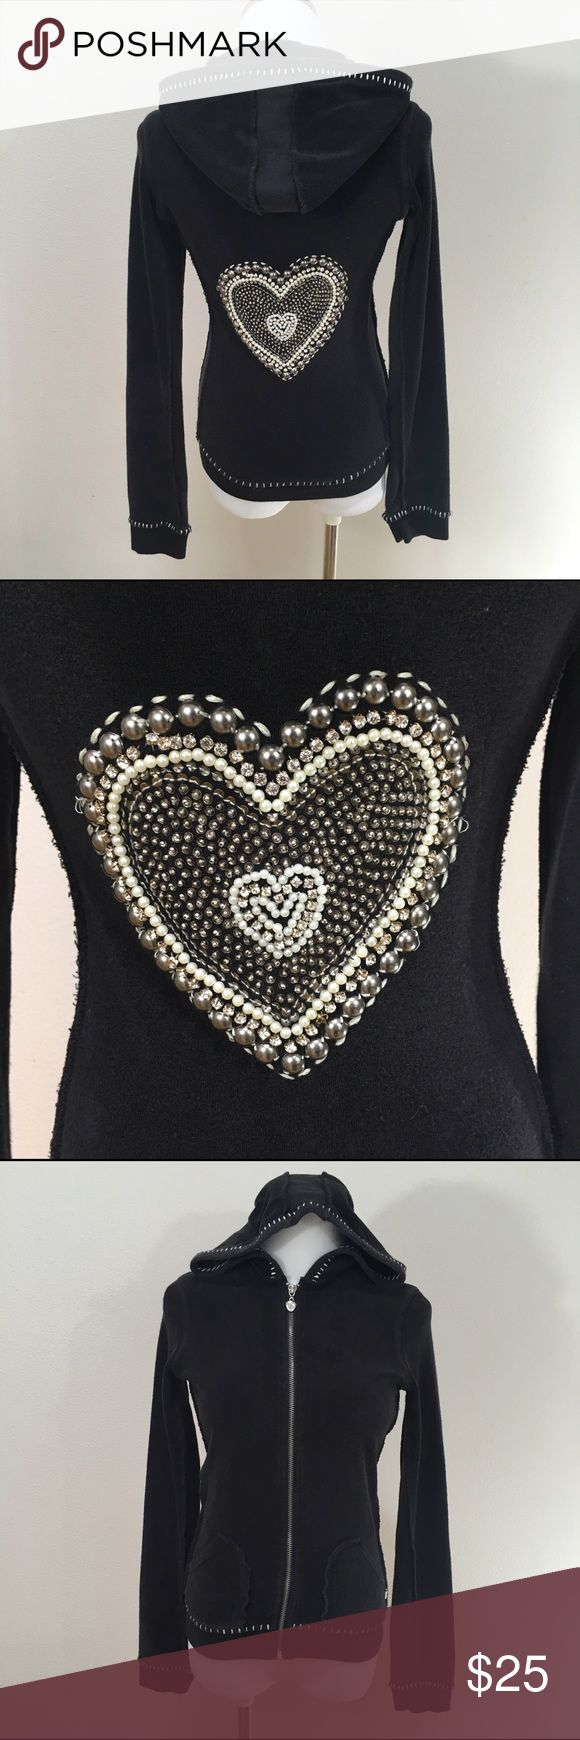 Twisted Heart Black Heart Embellished Hoodie Twisted Heart Black Heart Embellished Terry Cloth Zip Up Hoodie Petite. Excellent condition. No missing embellishments. Clean and comes from smoke free home. Questions welcomed! TWISTED HEART Tops Sweatshirts & Hoodies